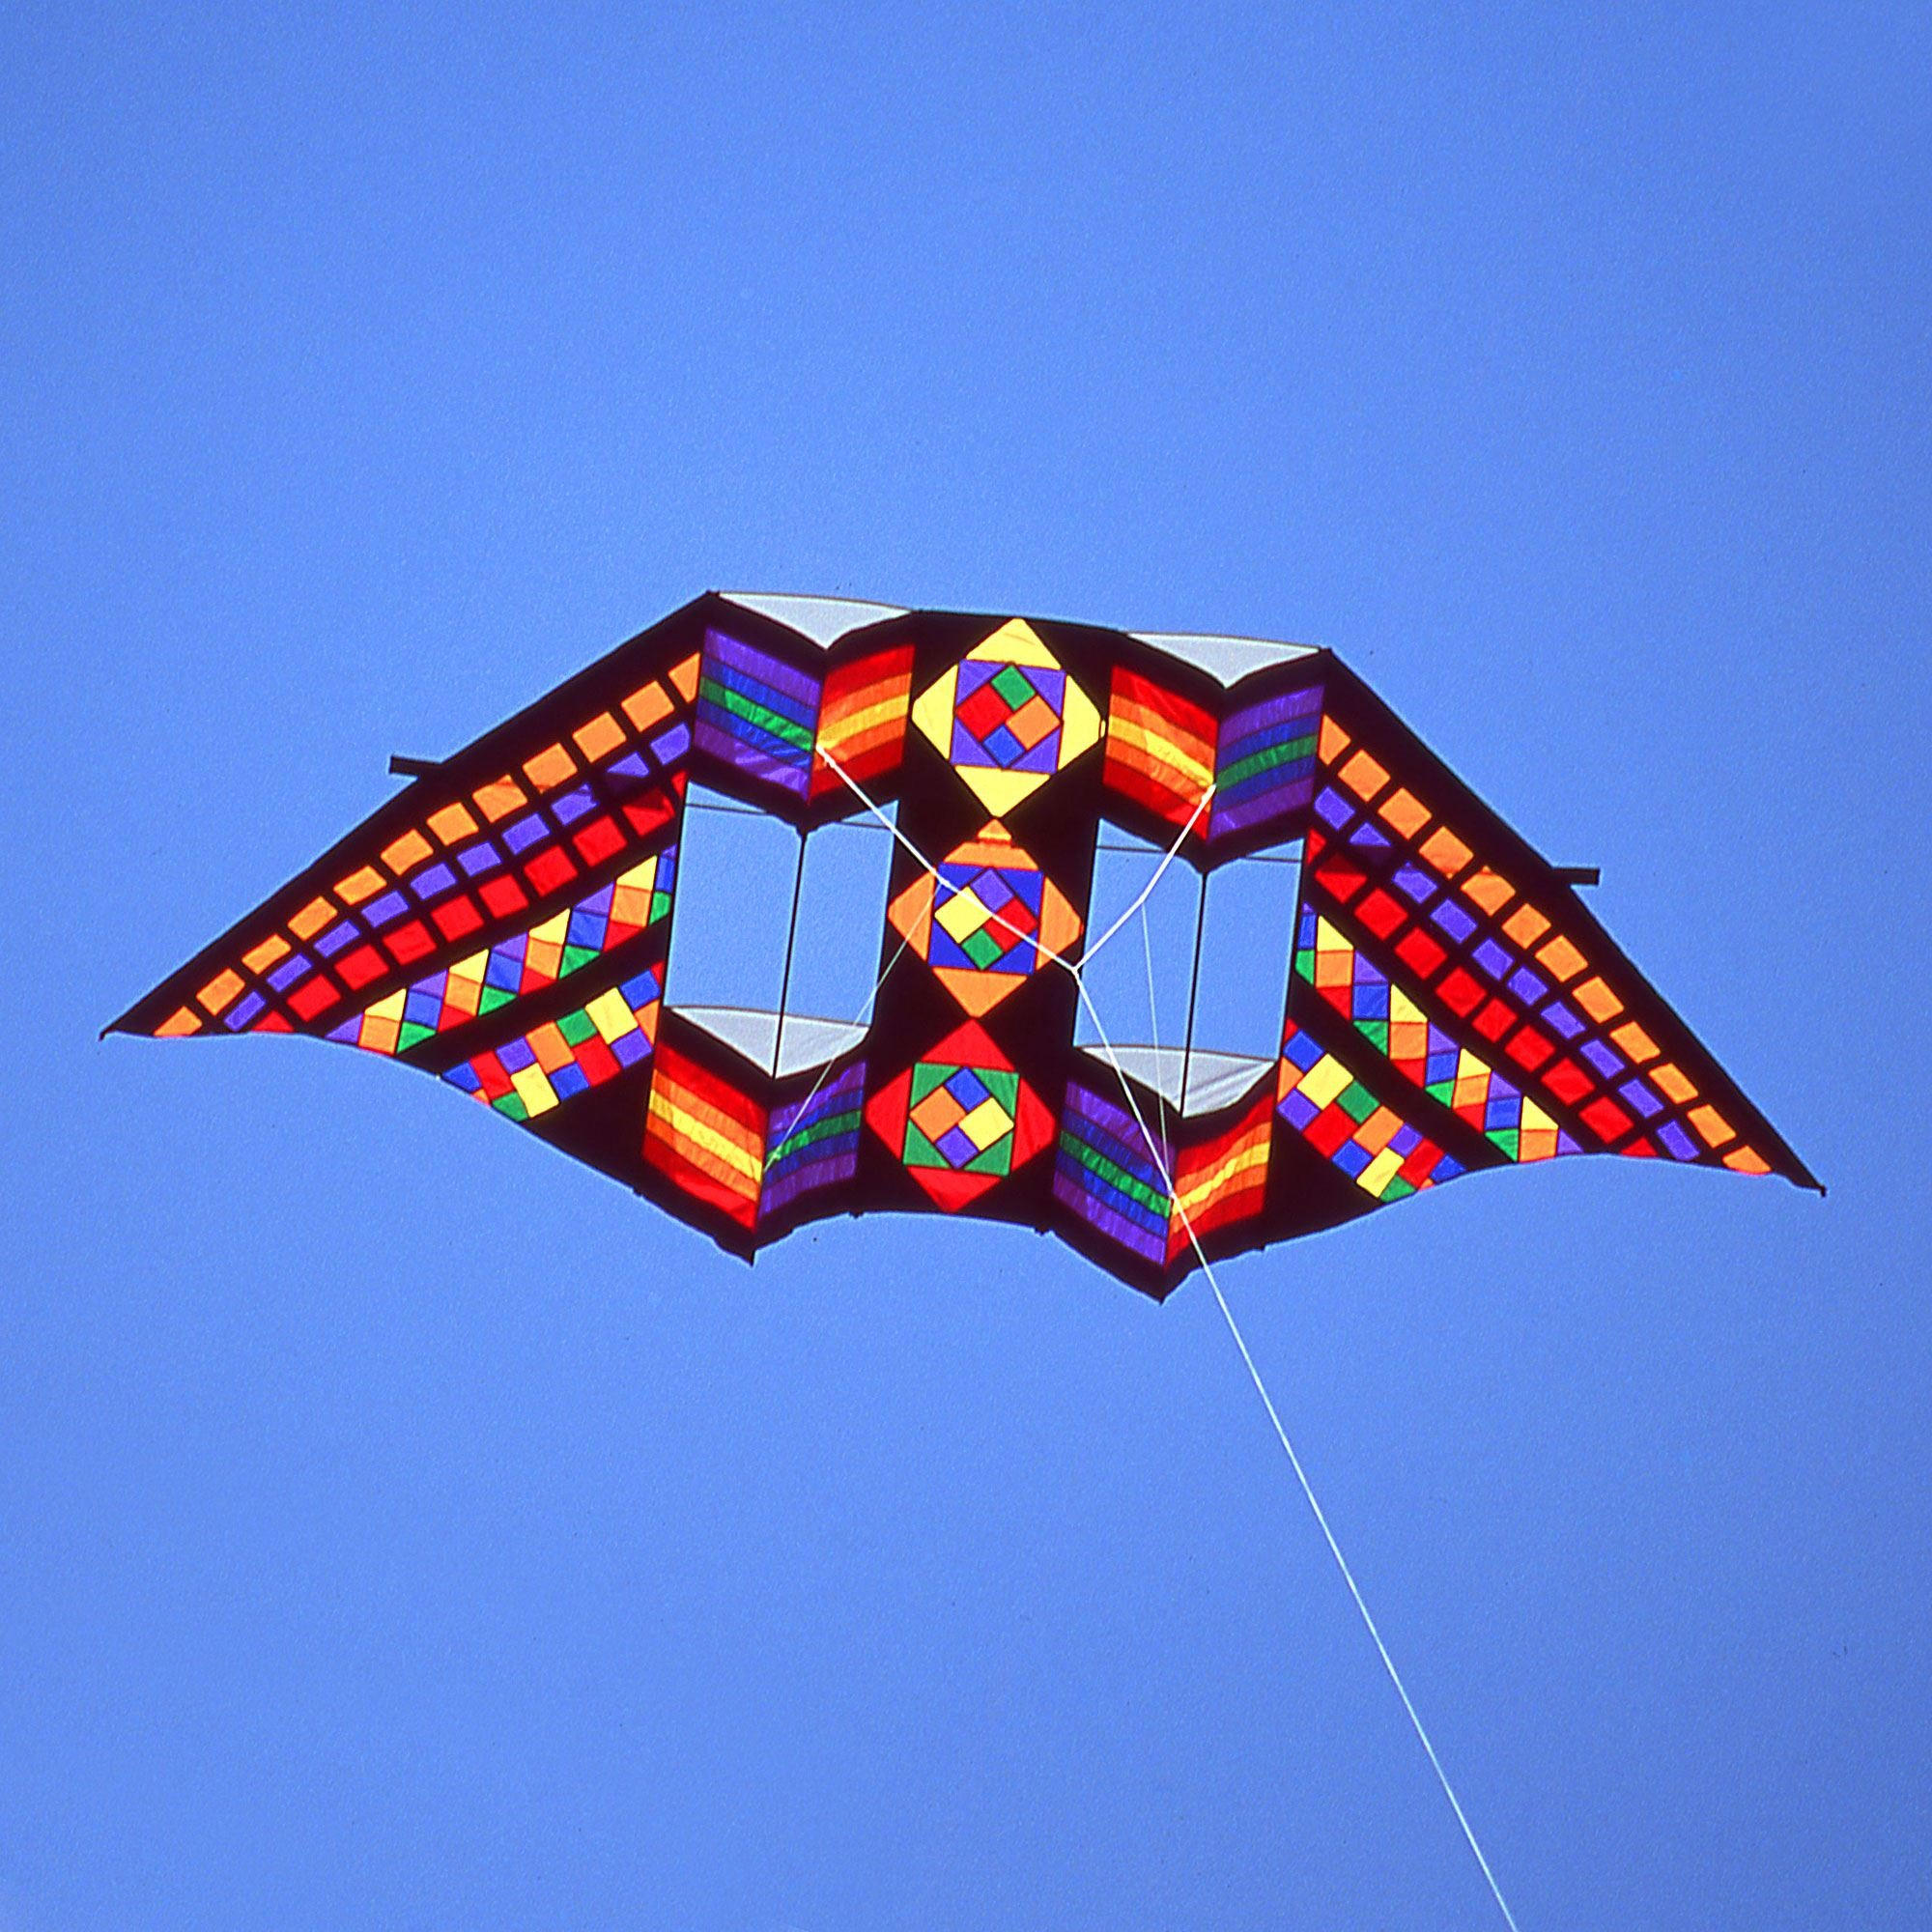 Swept Wing Double Box Delta Kite by Premier Kites